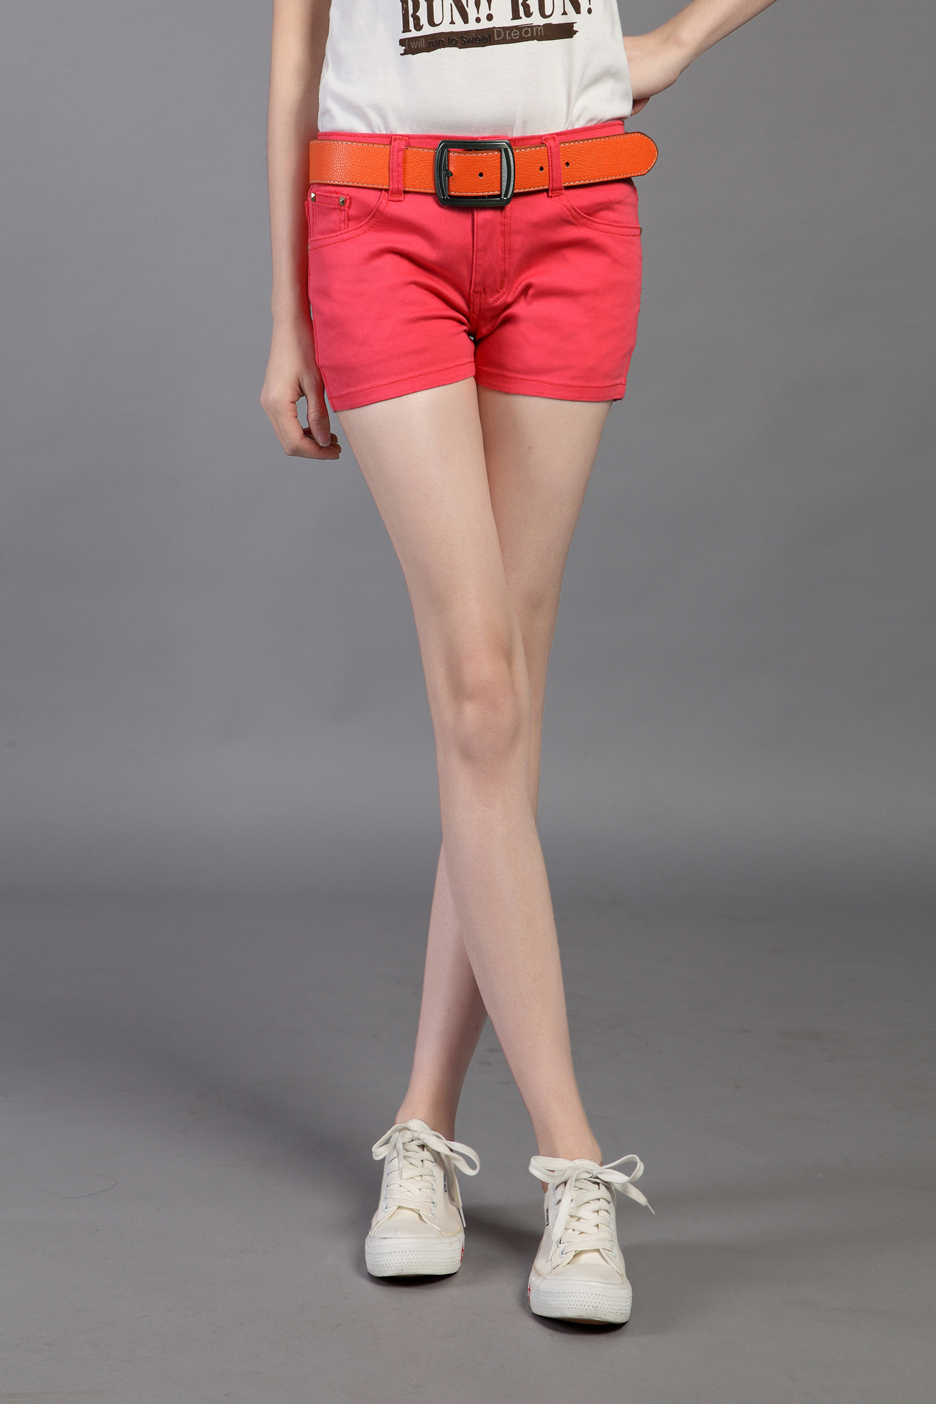 2013 Ladies fashion short jeans candy colors pants for woman female summer short trousers red,black,green,blue Free Shipping